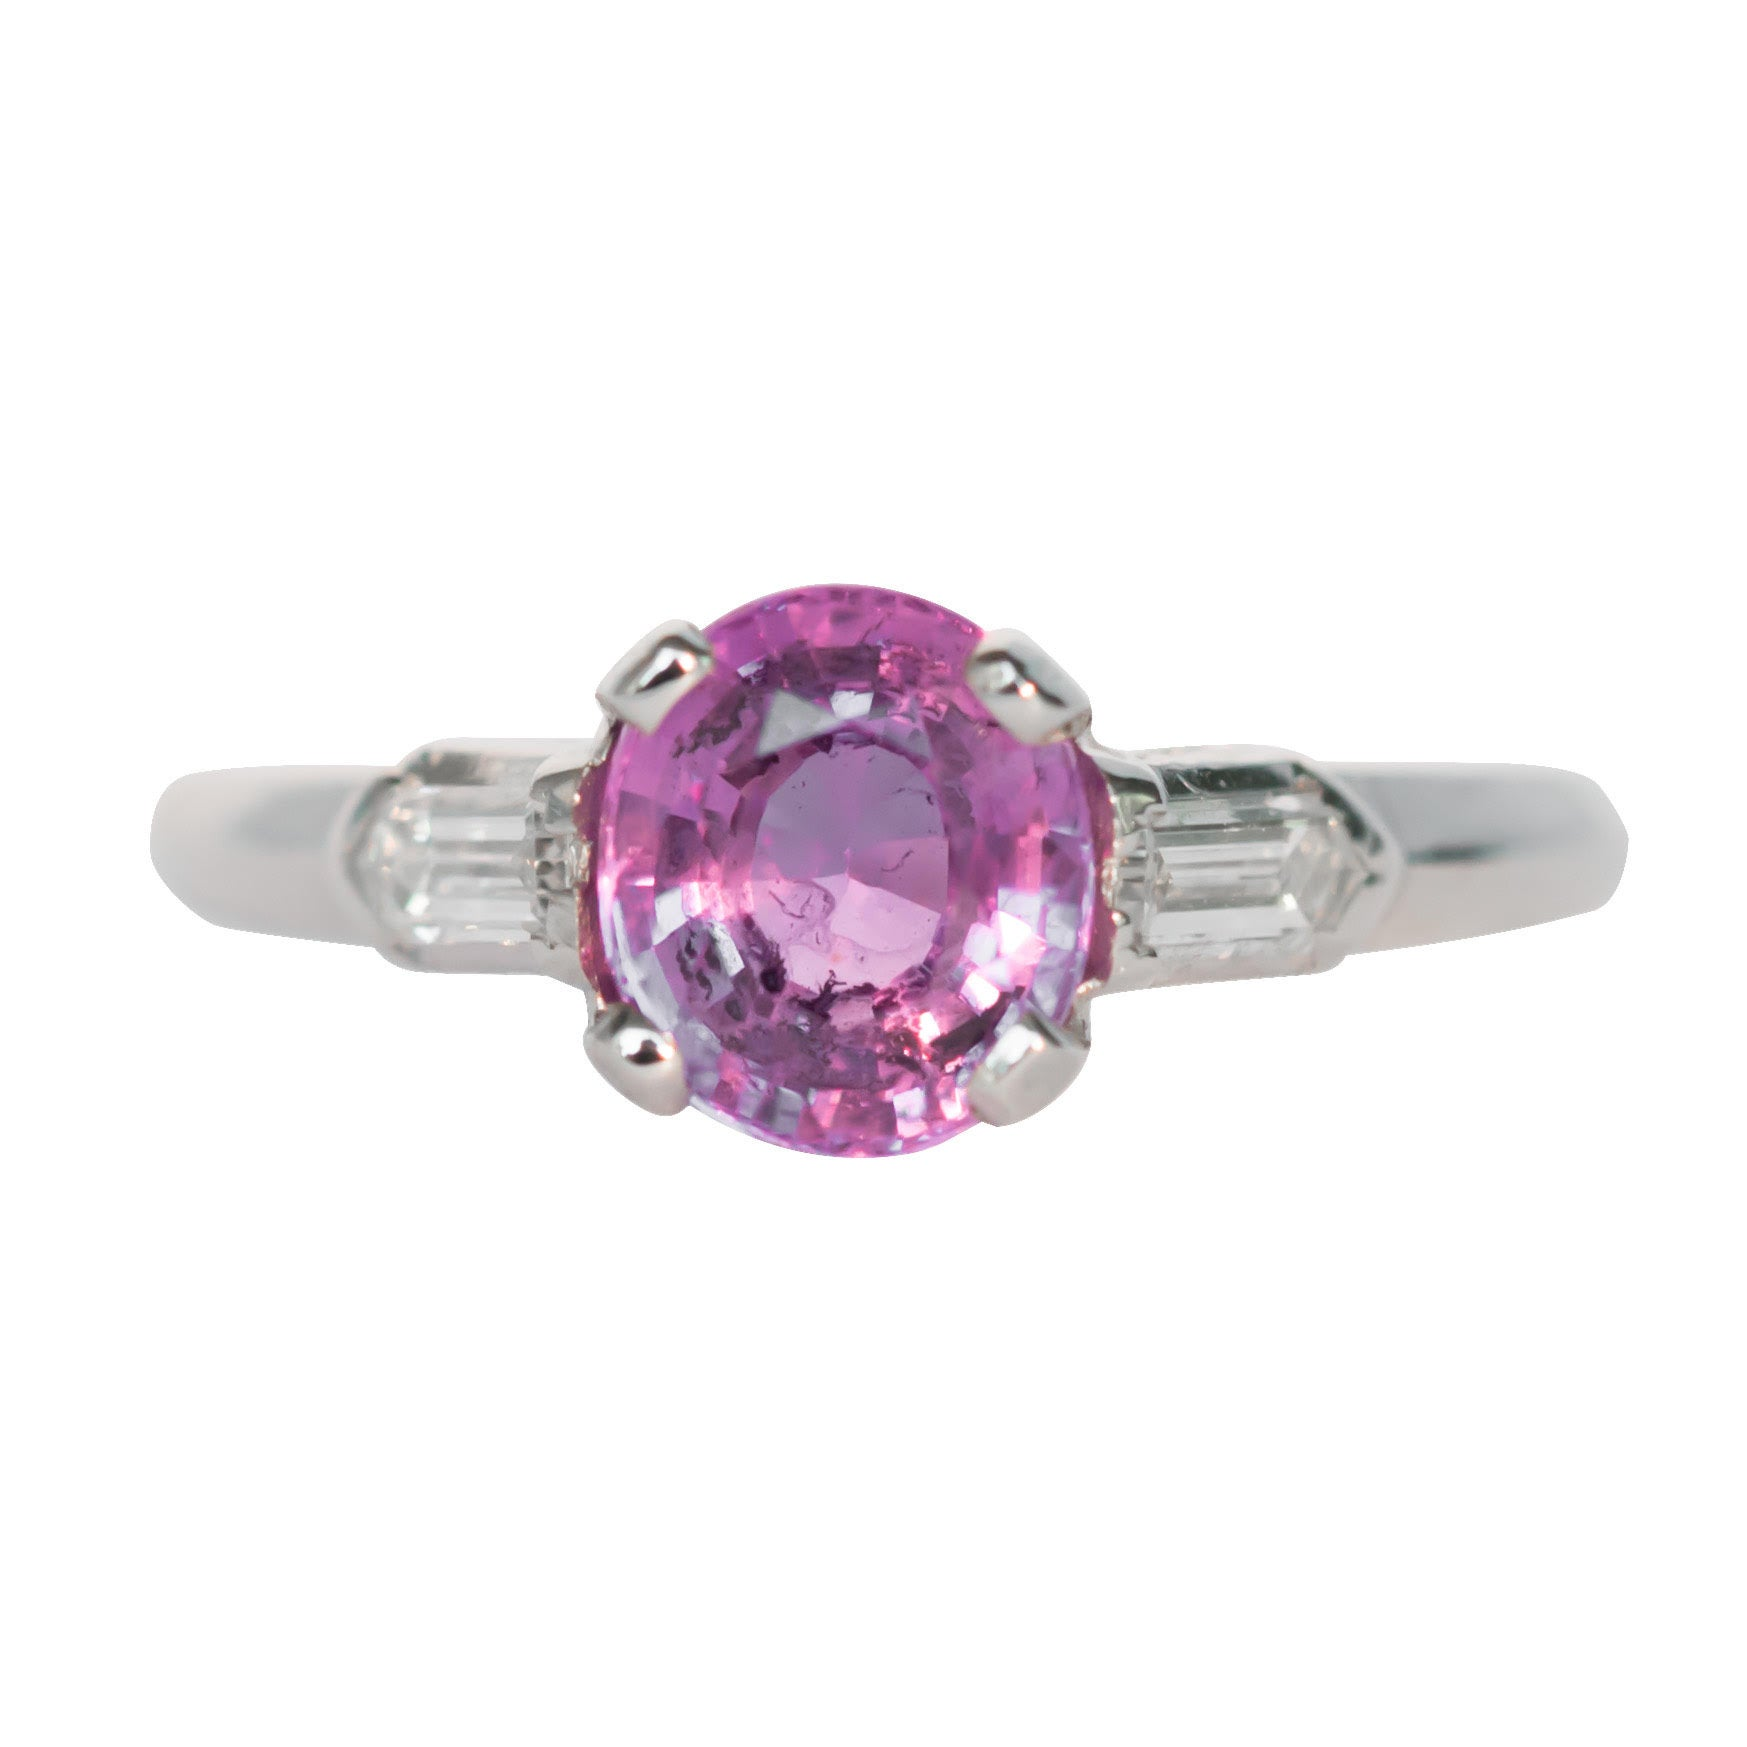 GIA Certified 1.20 Carat Purple-Pink Sapphire Platinum Engagement Ring